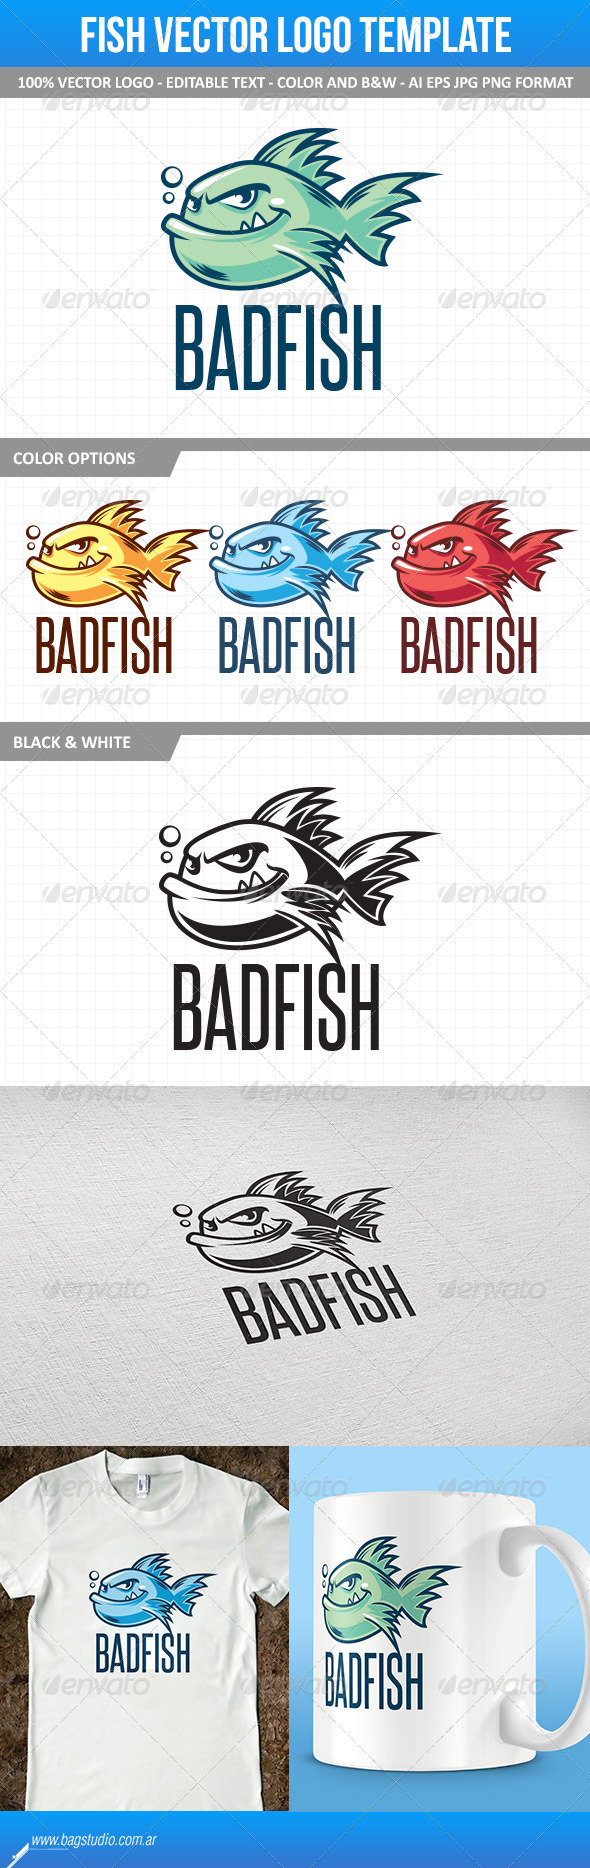 GraphicRiver Fish Mascot Vector Logo Template 7228344